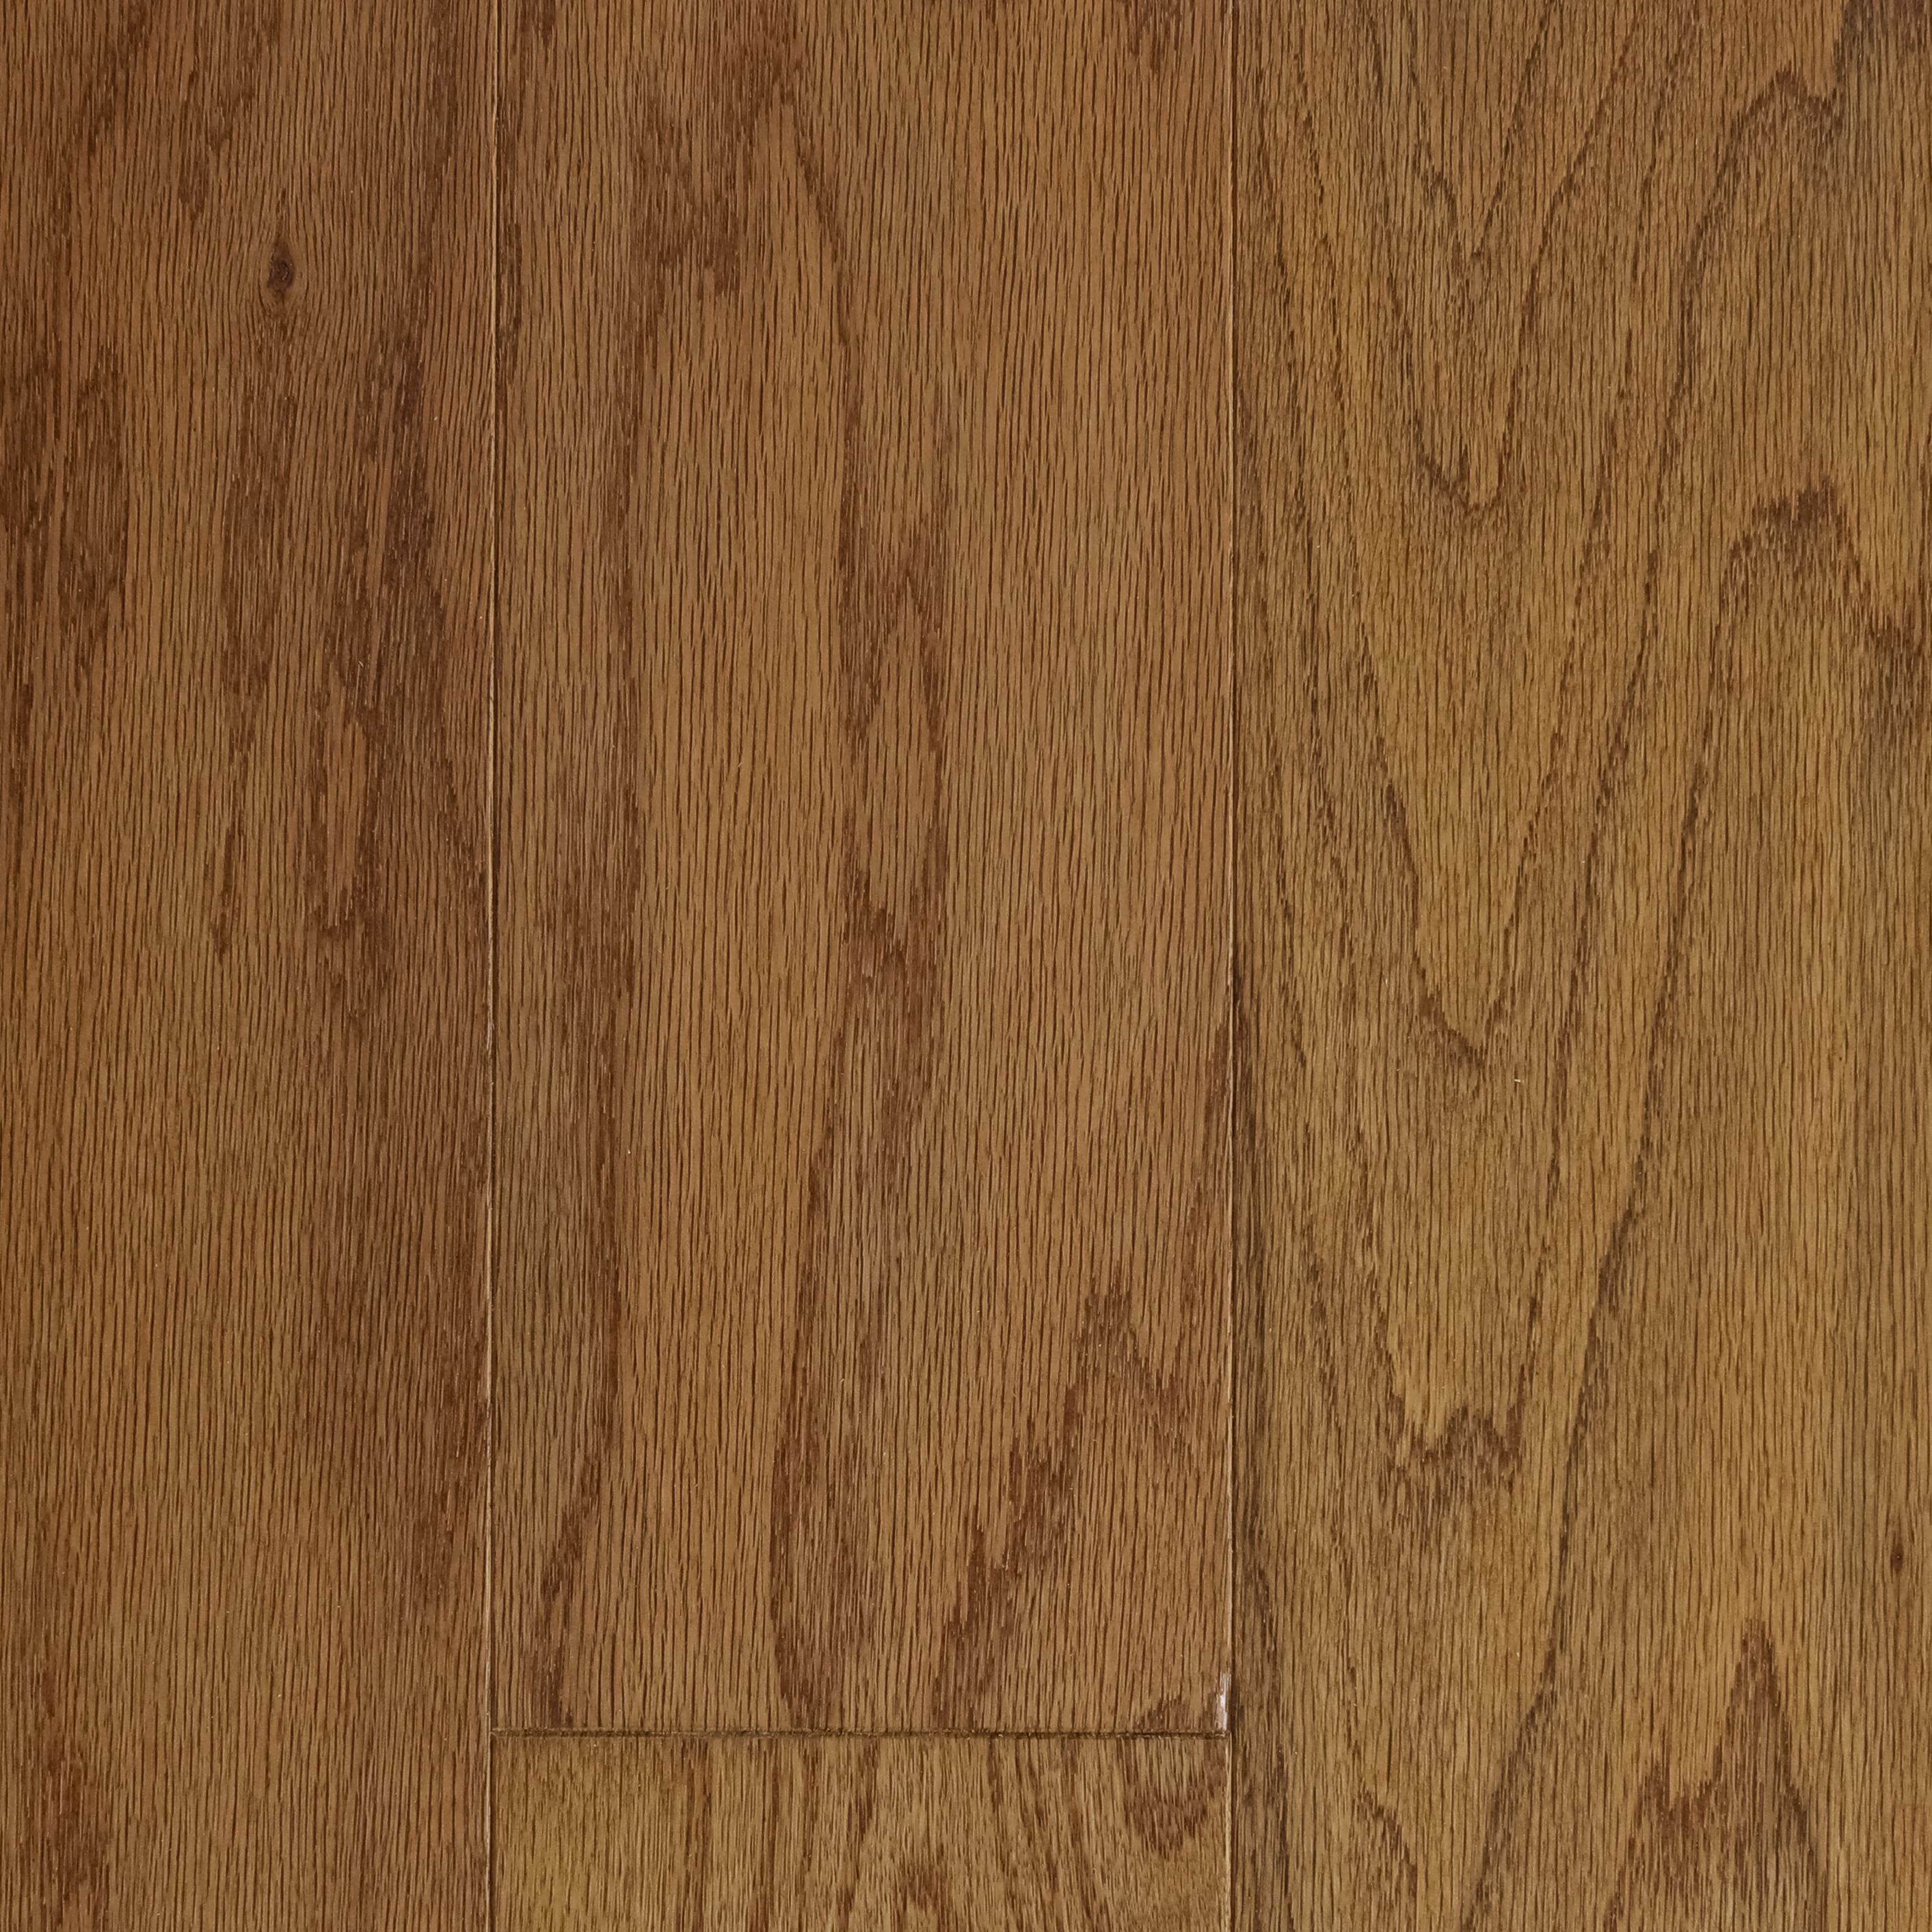 "Hudson Collection Engineered Hardwood in Caramel - 3/8"" X 5"" (24.5sqft/case)"